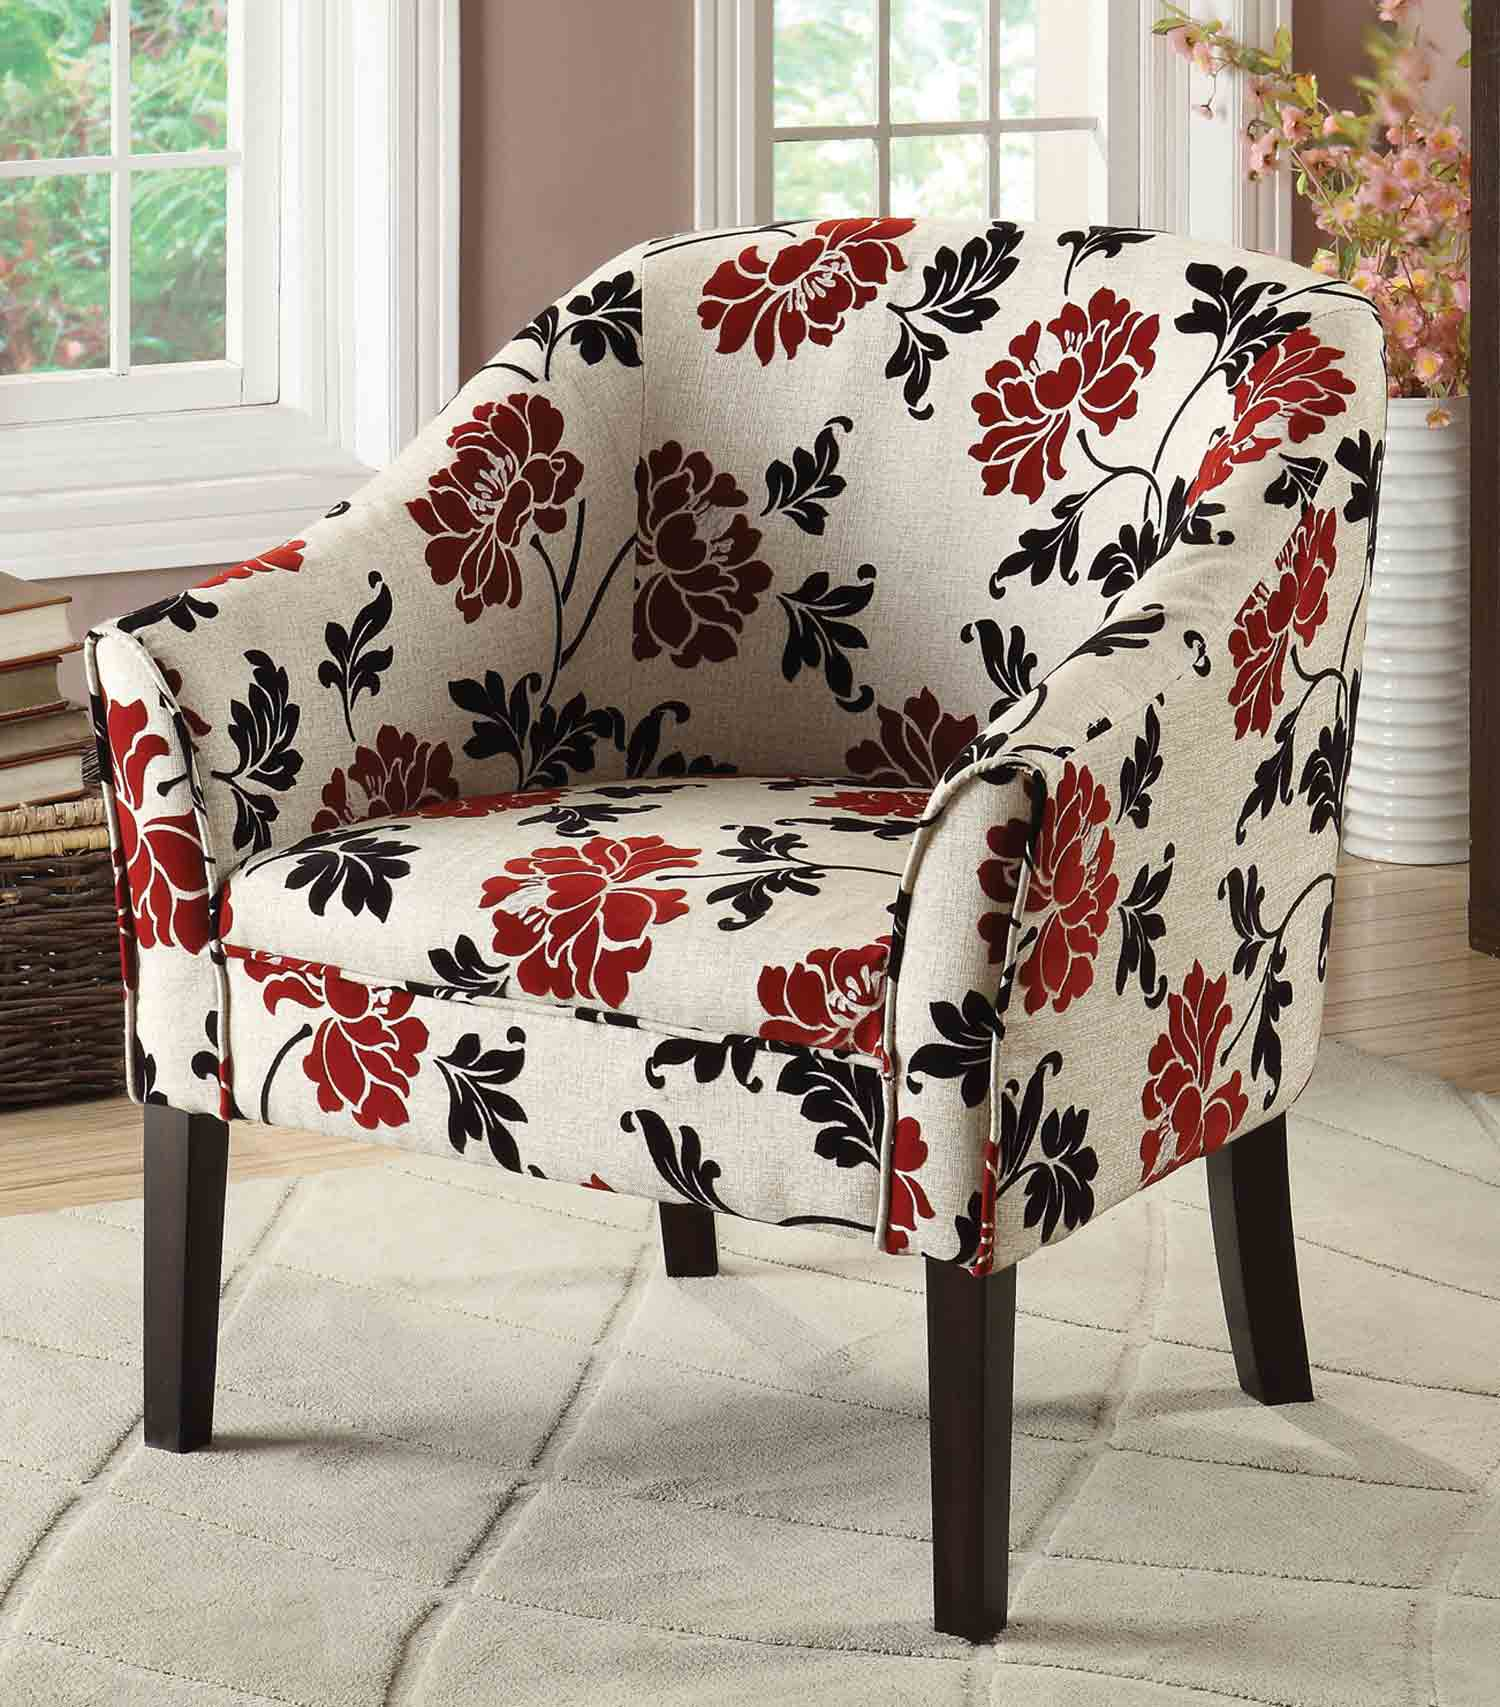 Coaster 902207 Accent Chair - Red/Beige/Black